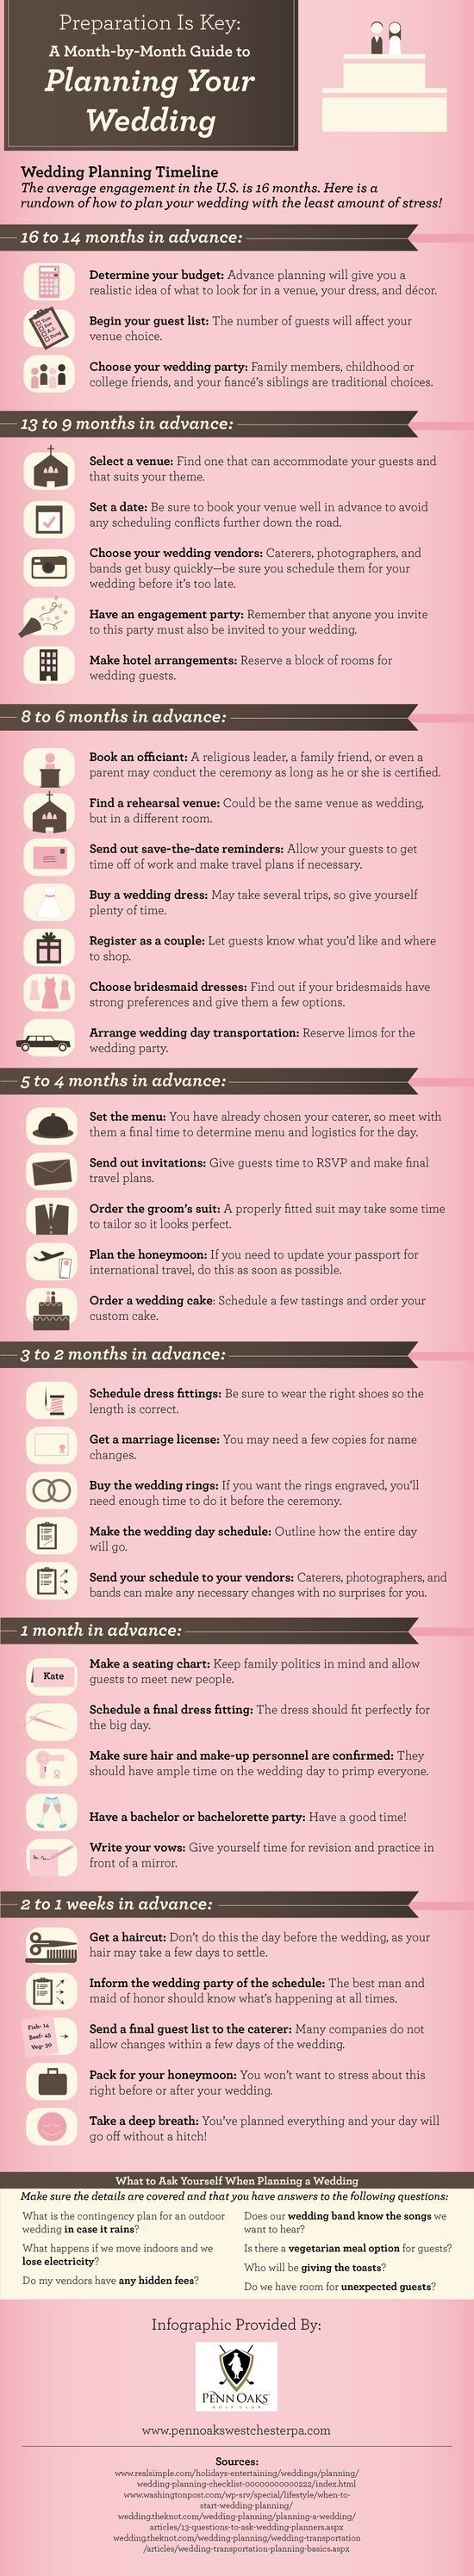 64 best Wedding Planning images on Pinterest Wedding stuff